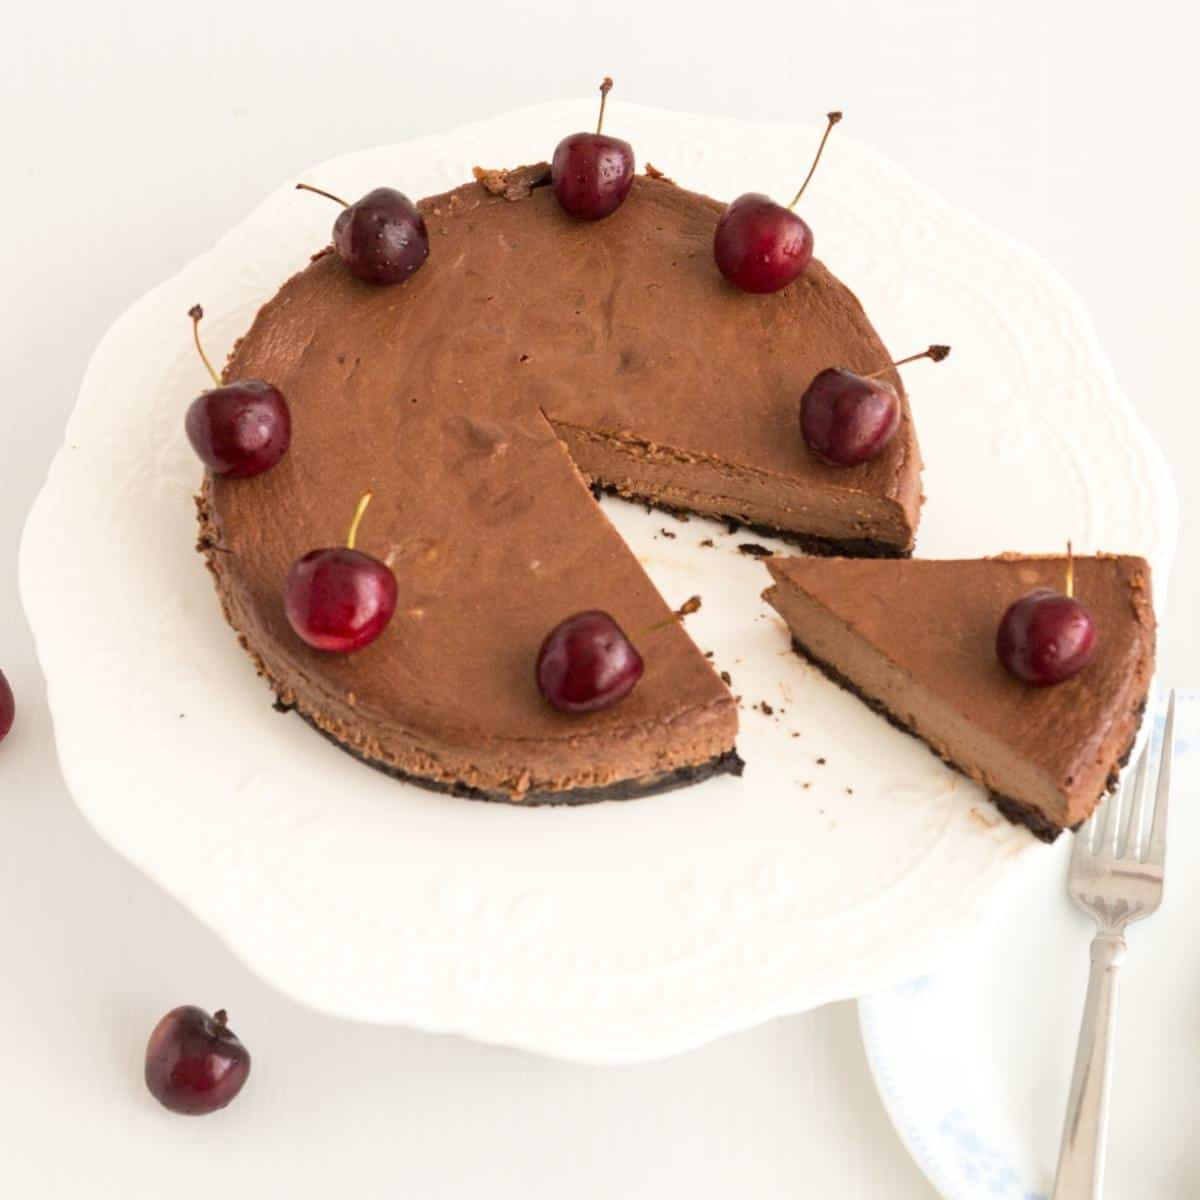 Sliced chocolate cheesecake with cherries on a cake stand.